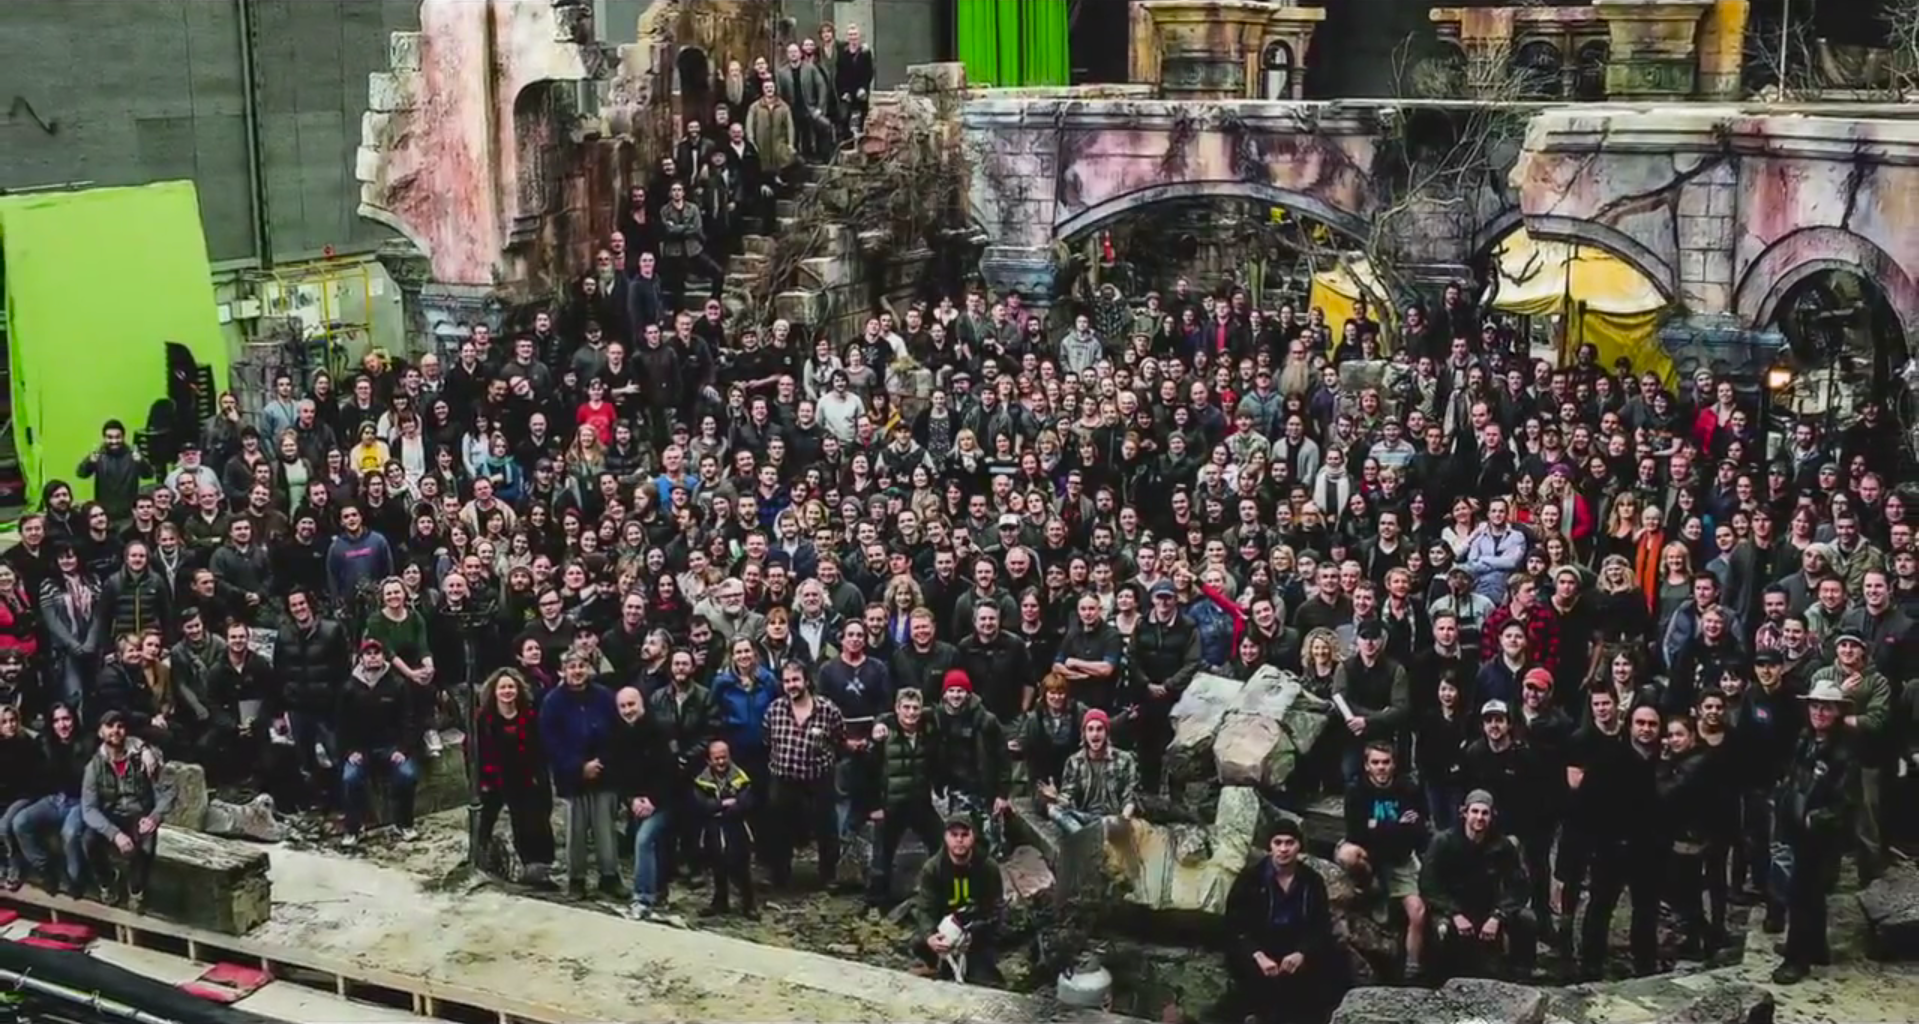 The Cast and Crew of the Hobbit